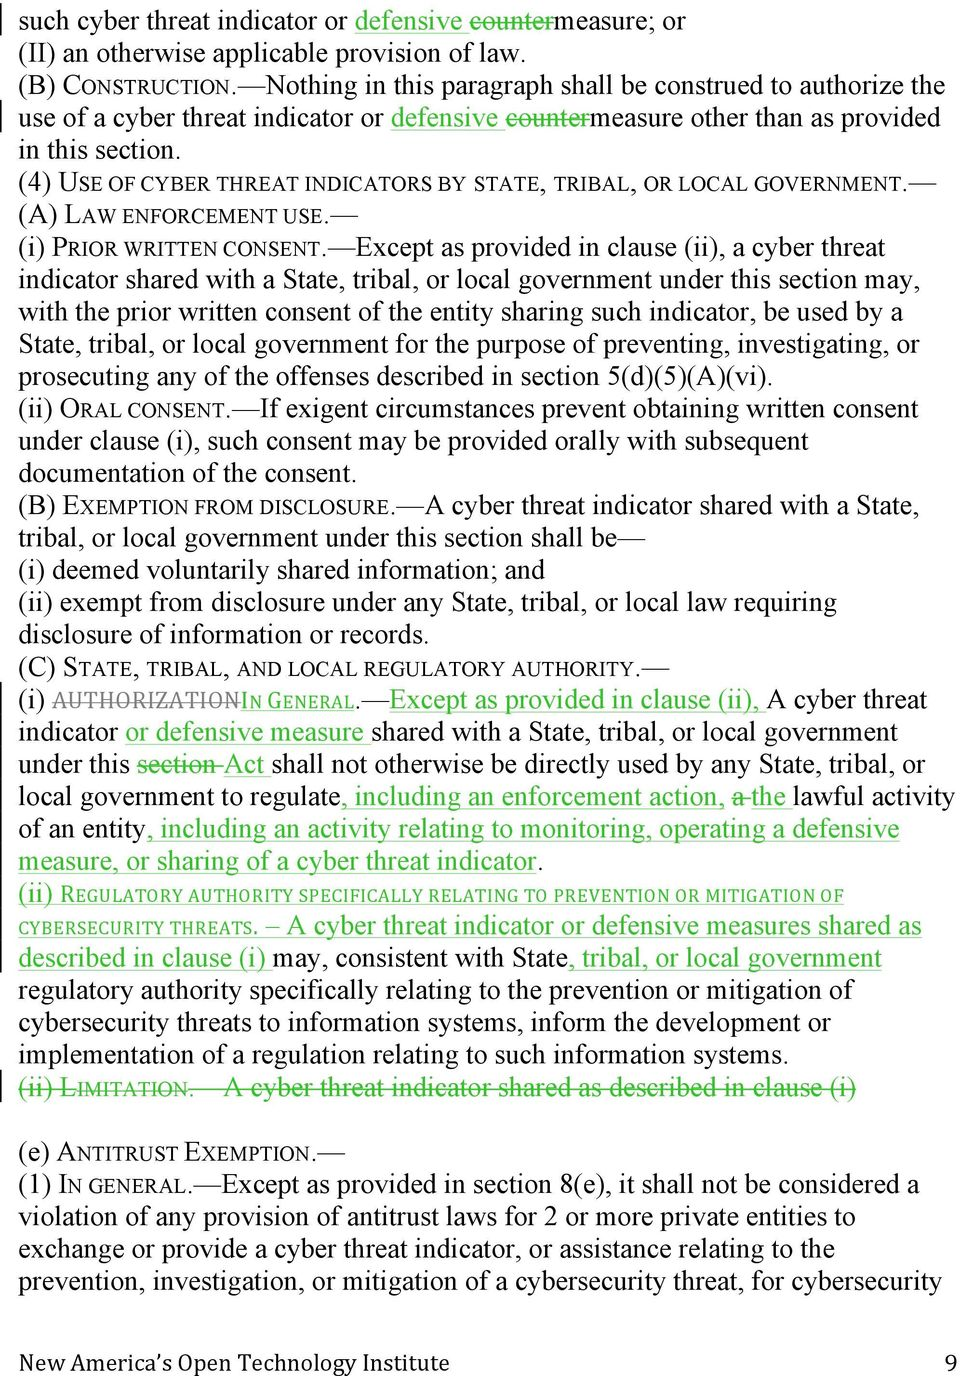 (4) USE OF CYBER THREAT INDICATORS BY STATE, TRIBAL, OR LOCAL GOVERNMENT. (A) LAW ENFORCEMENT USE. (i) PRIOR WRITTEN CONSENT.